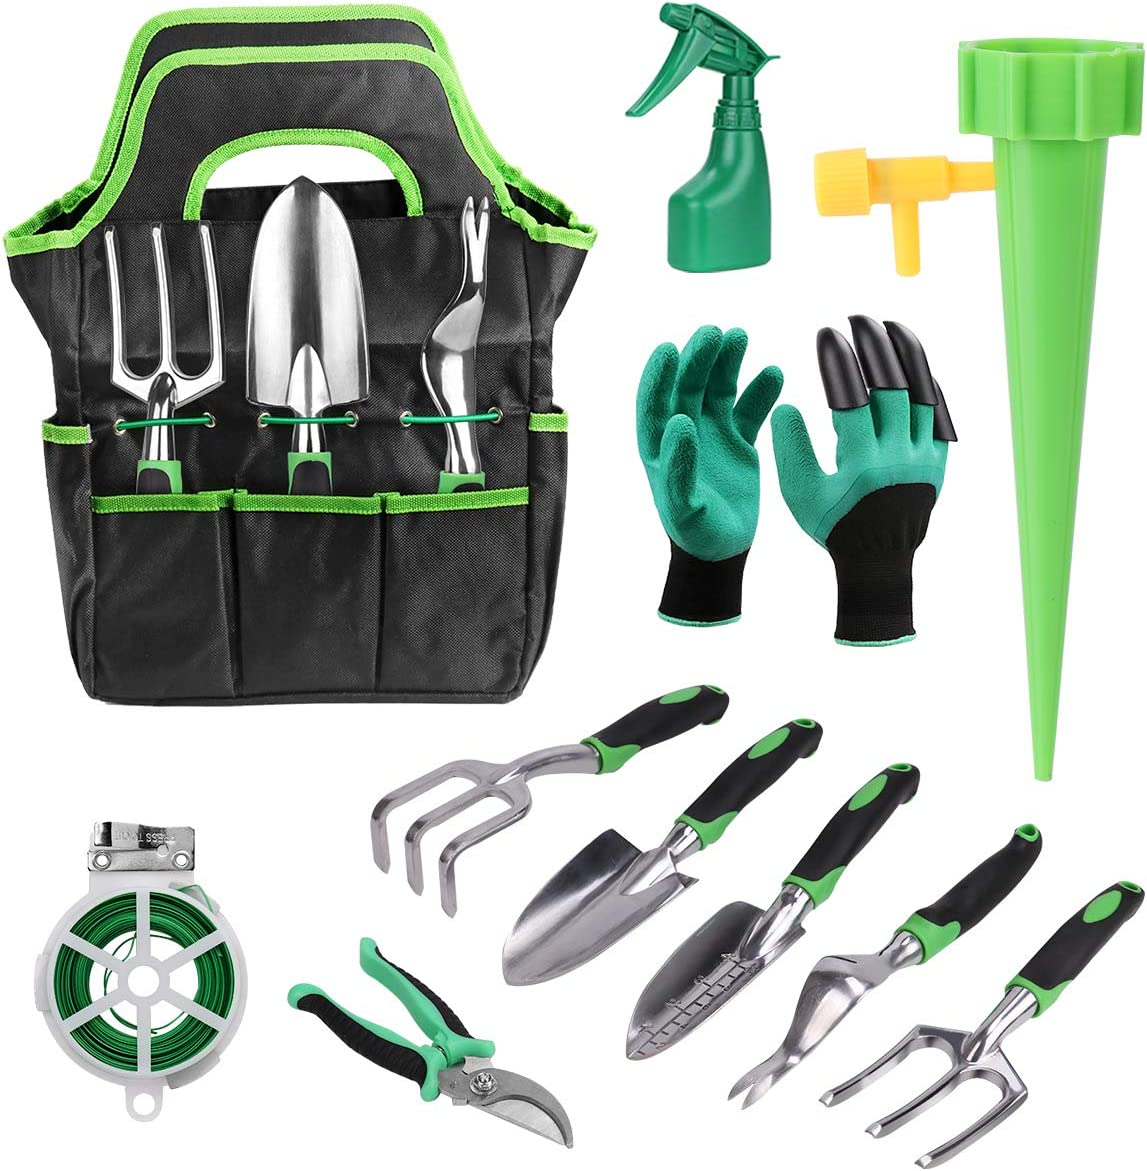 FAMI HELPER 16 PCS Garden Tool Sets - Gardening Kit with Self Watering System for Flower and Vegetable Plants Care, Gardening Tools Kits for Women Men